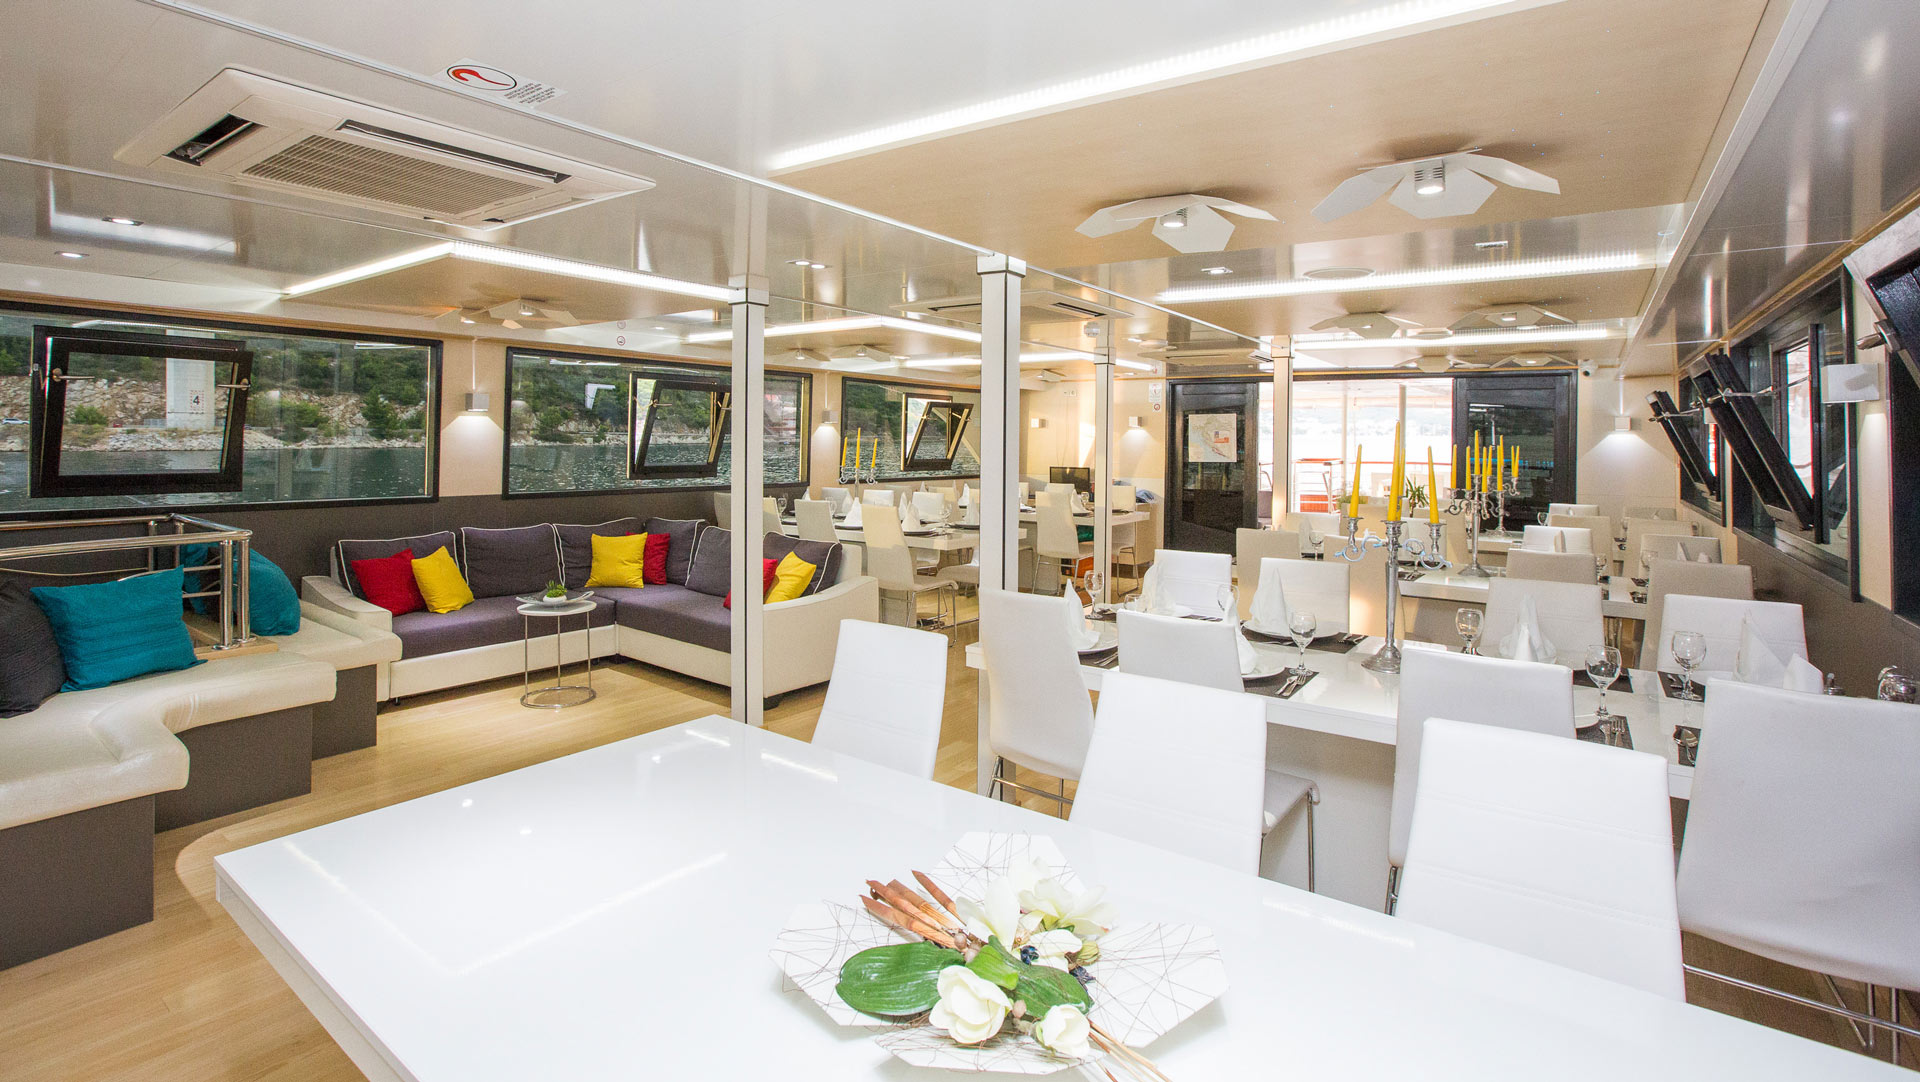 MS Prestige - Small Cruise Ship - Dining area